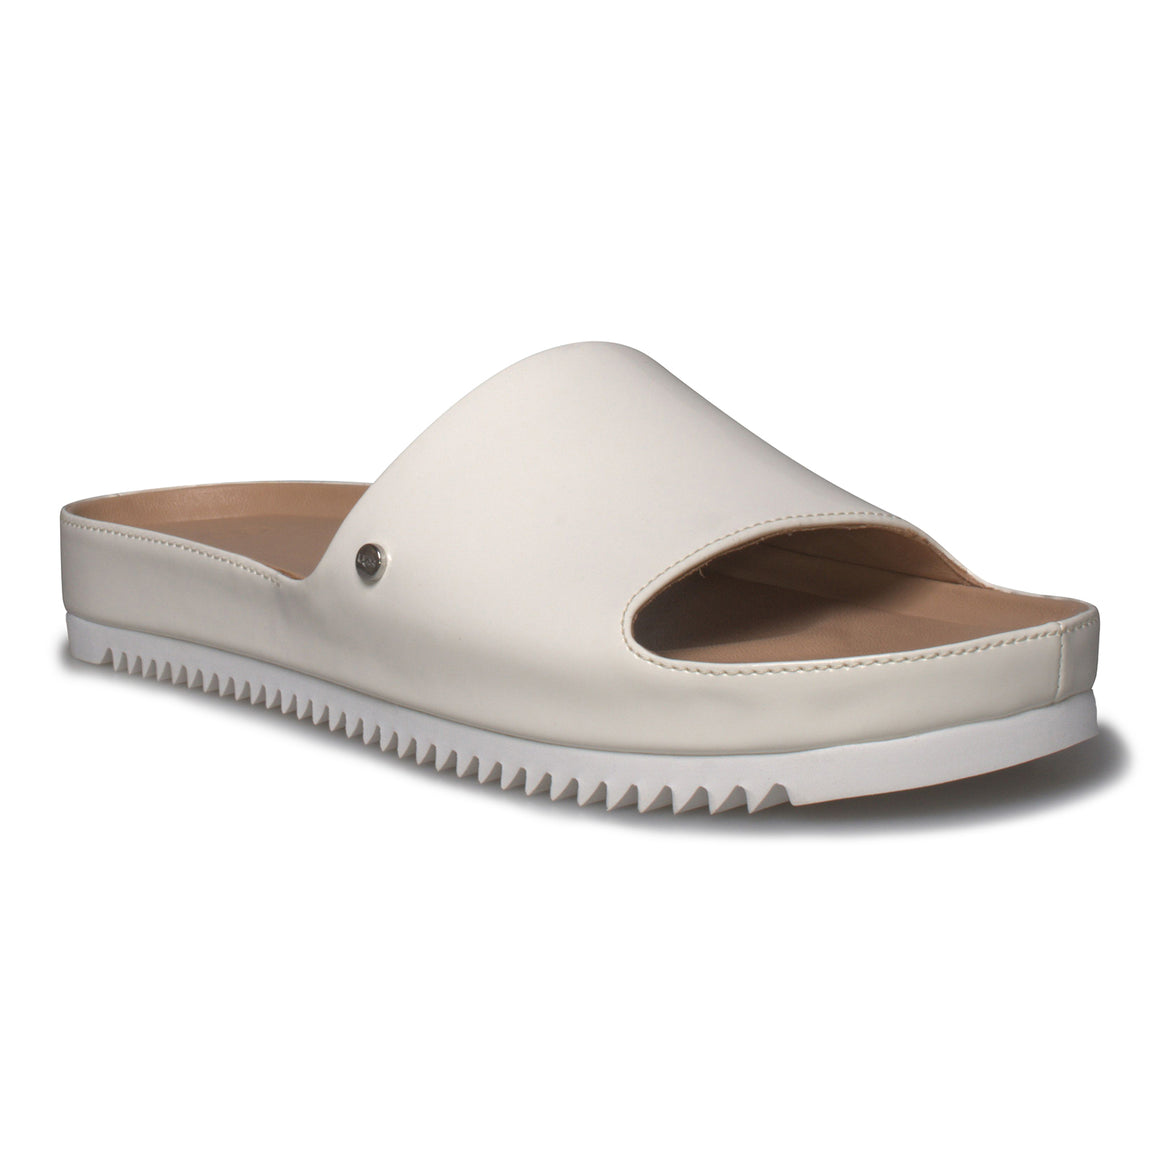 UGG Jane Patent Jasmine Slip On Sandals - Women's